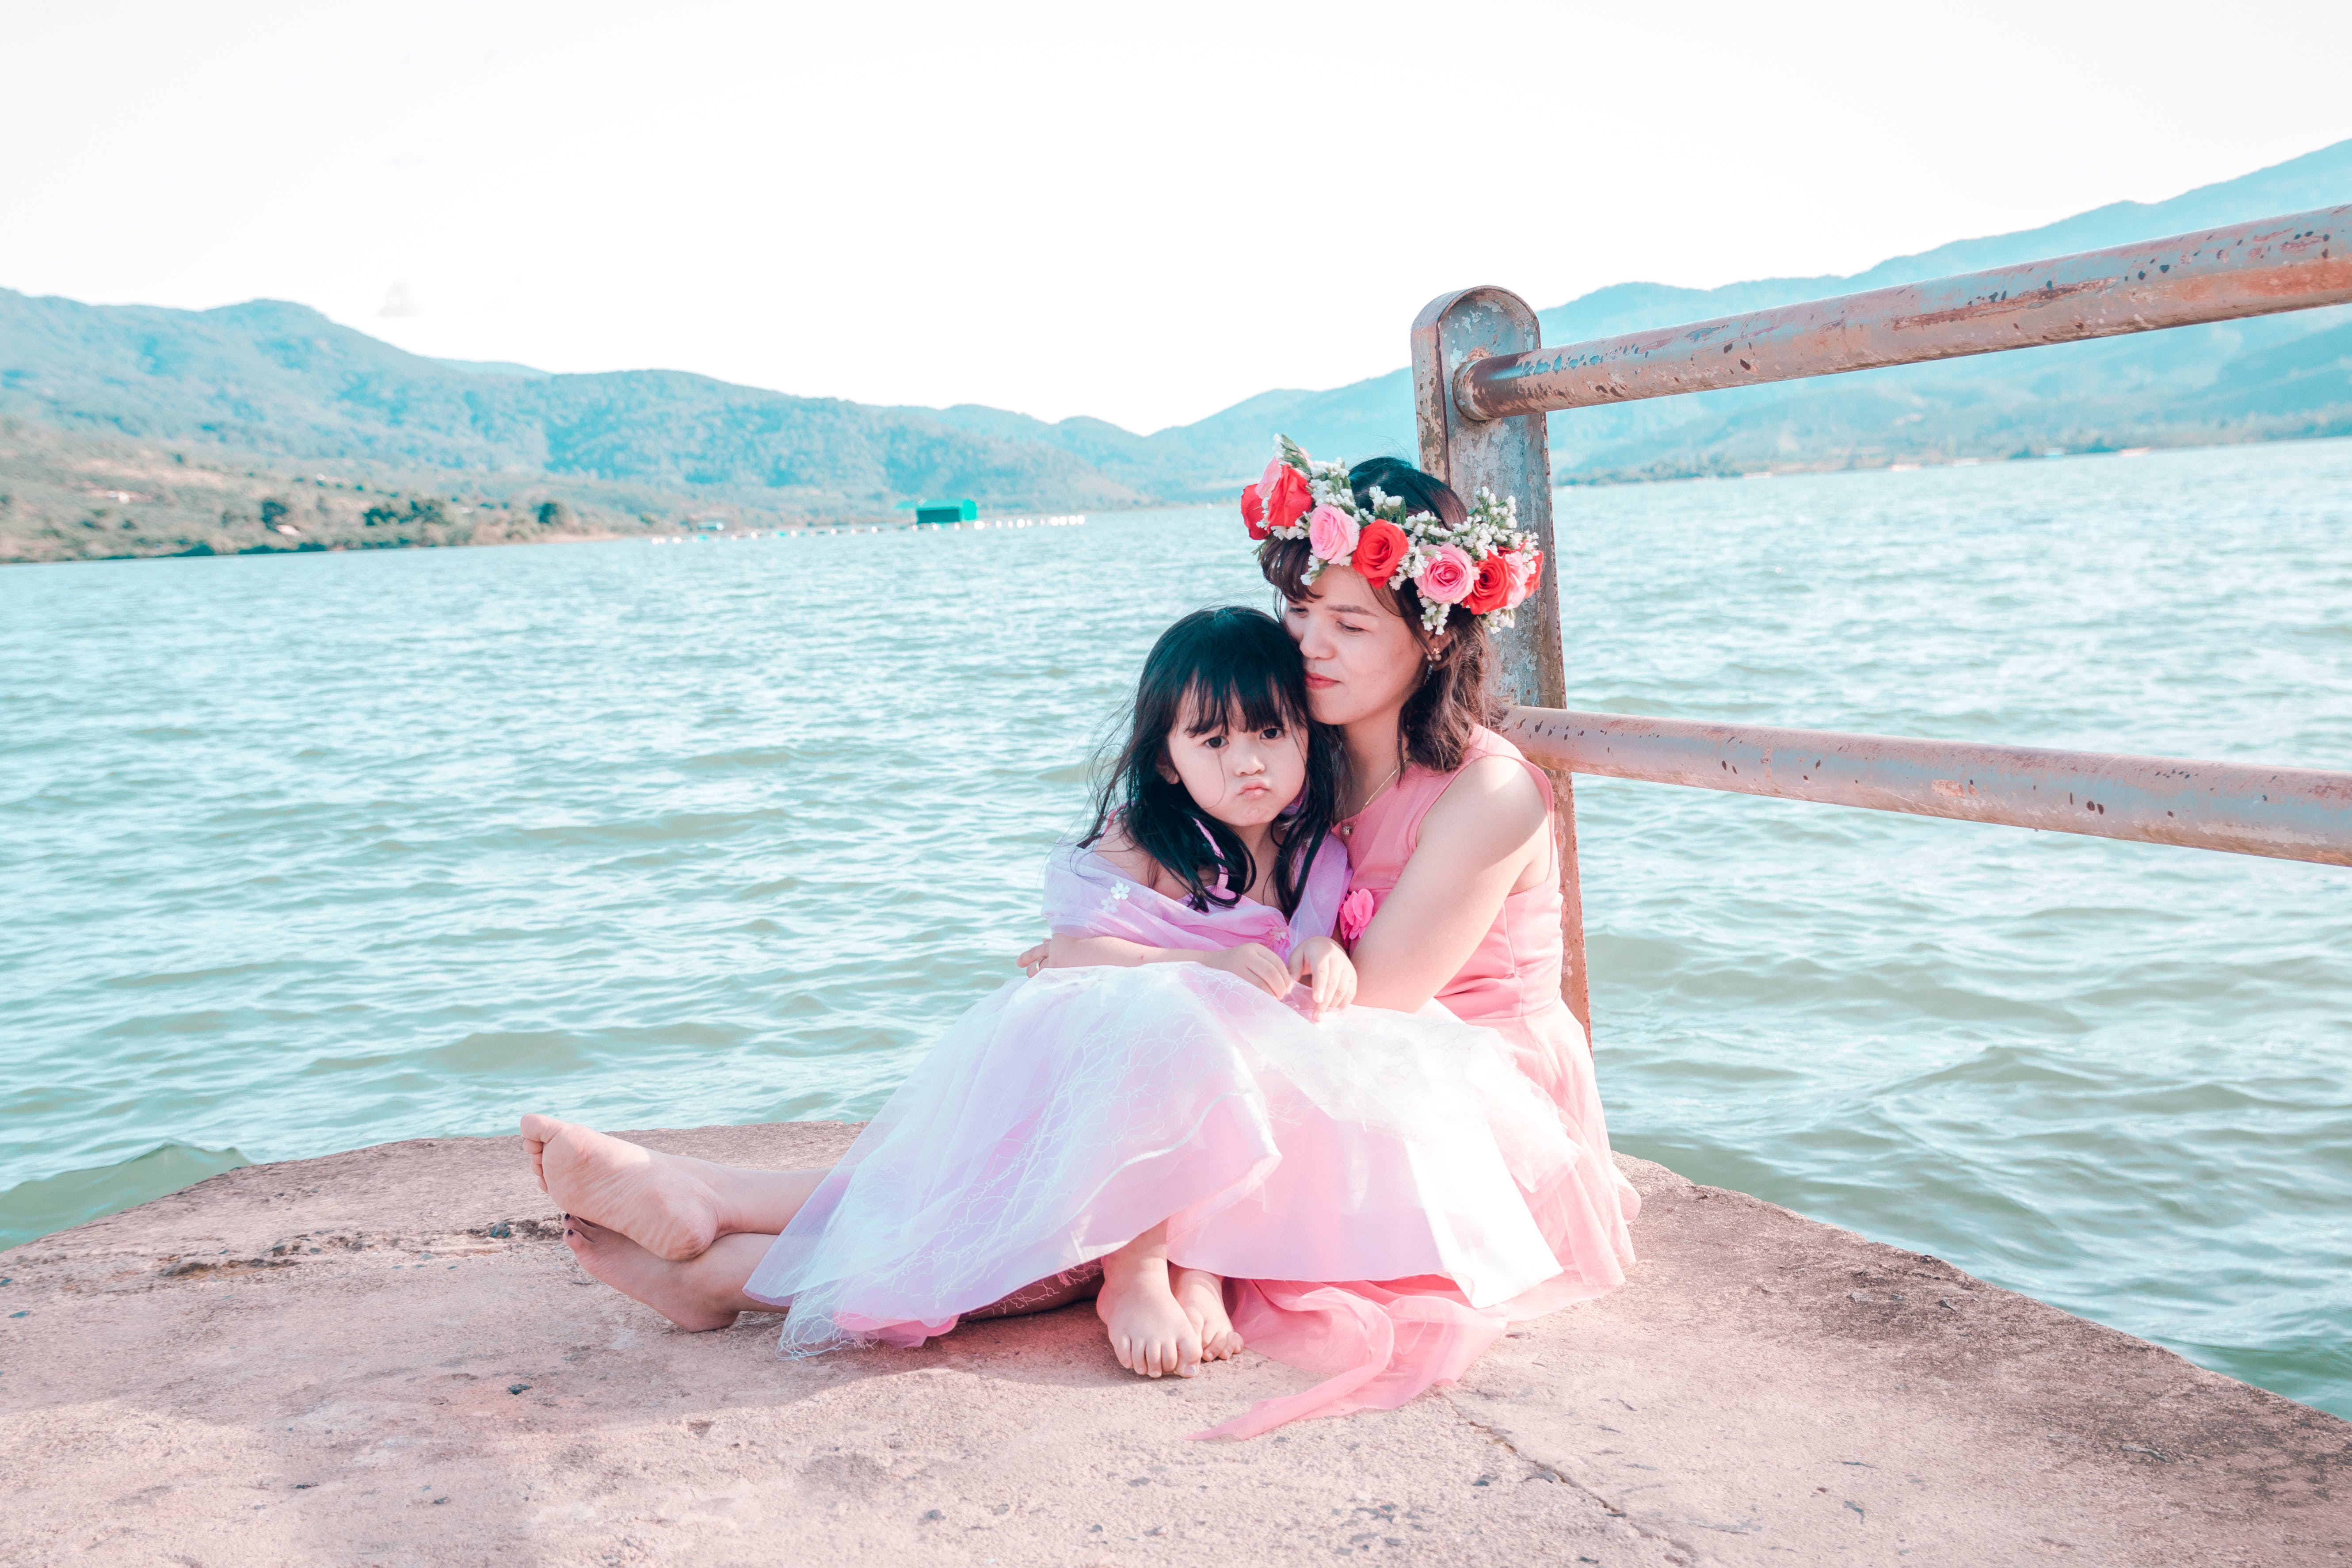 Woman And Girl Sitting Beside Body Of Water